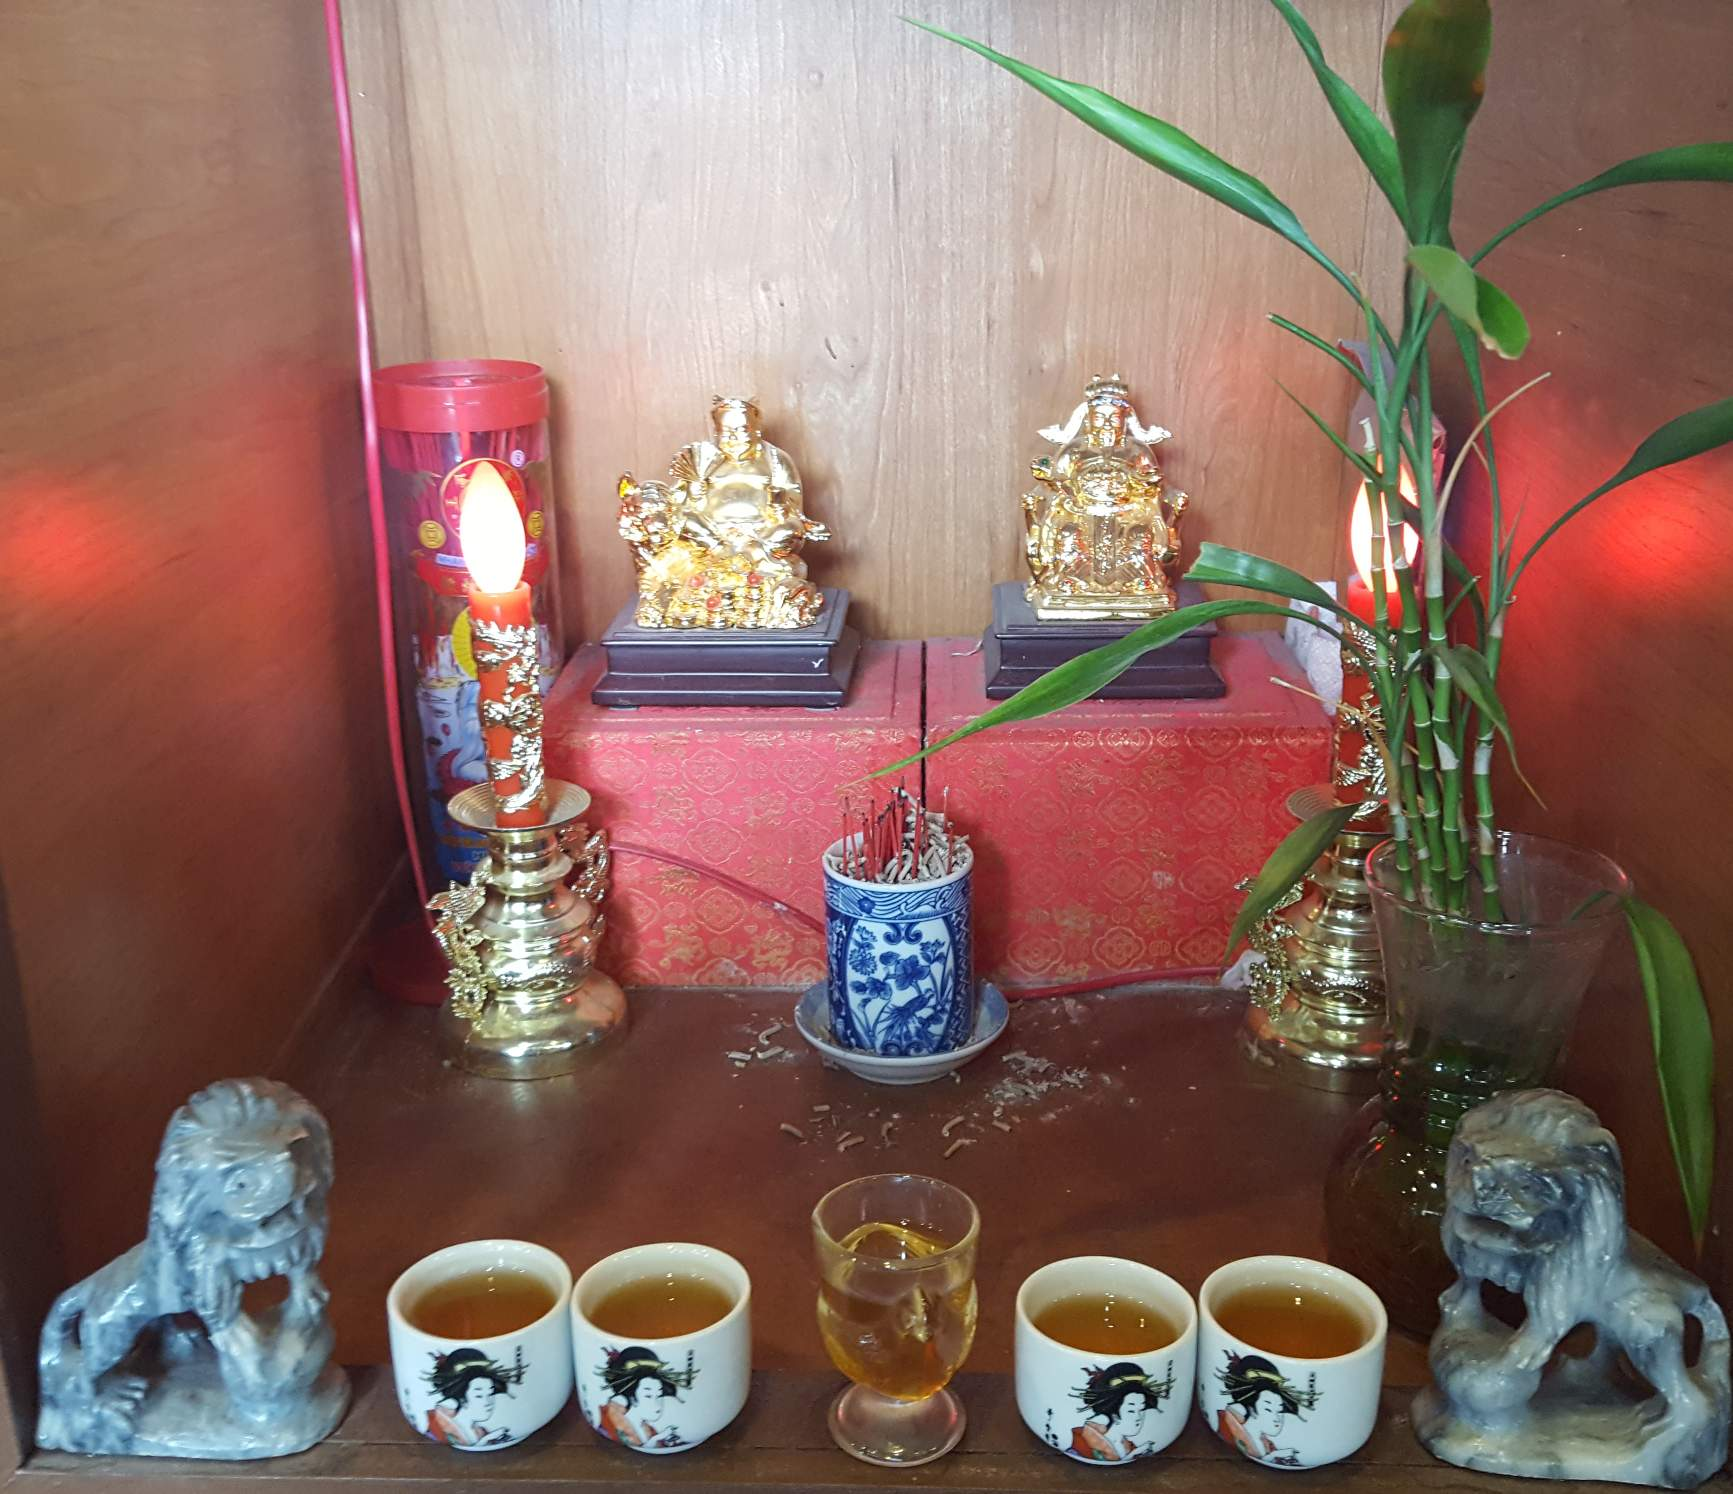 Restaurant Shrines, sights of a Dasher.